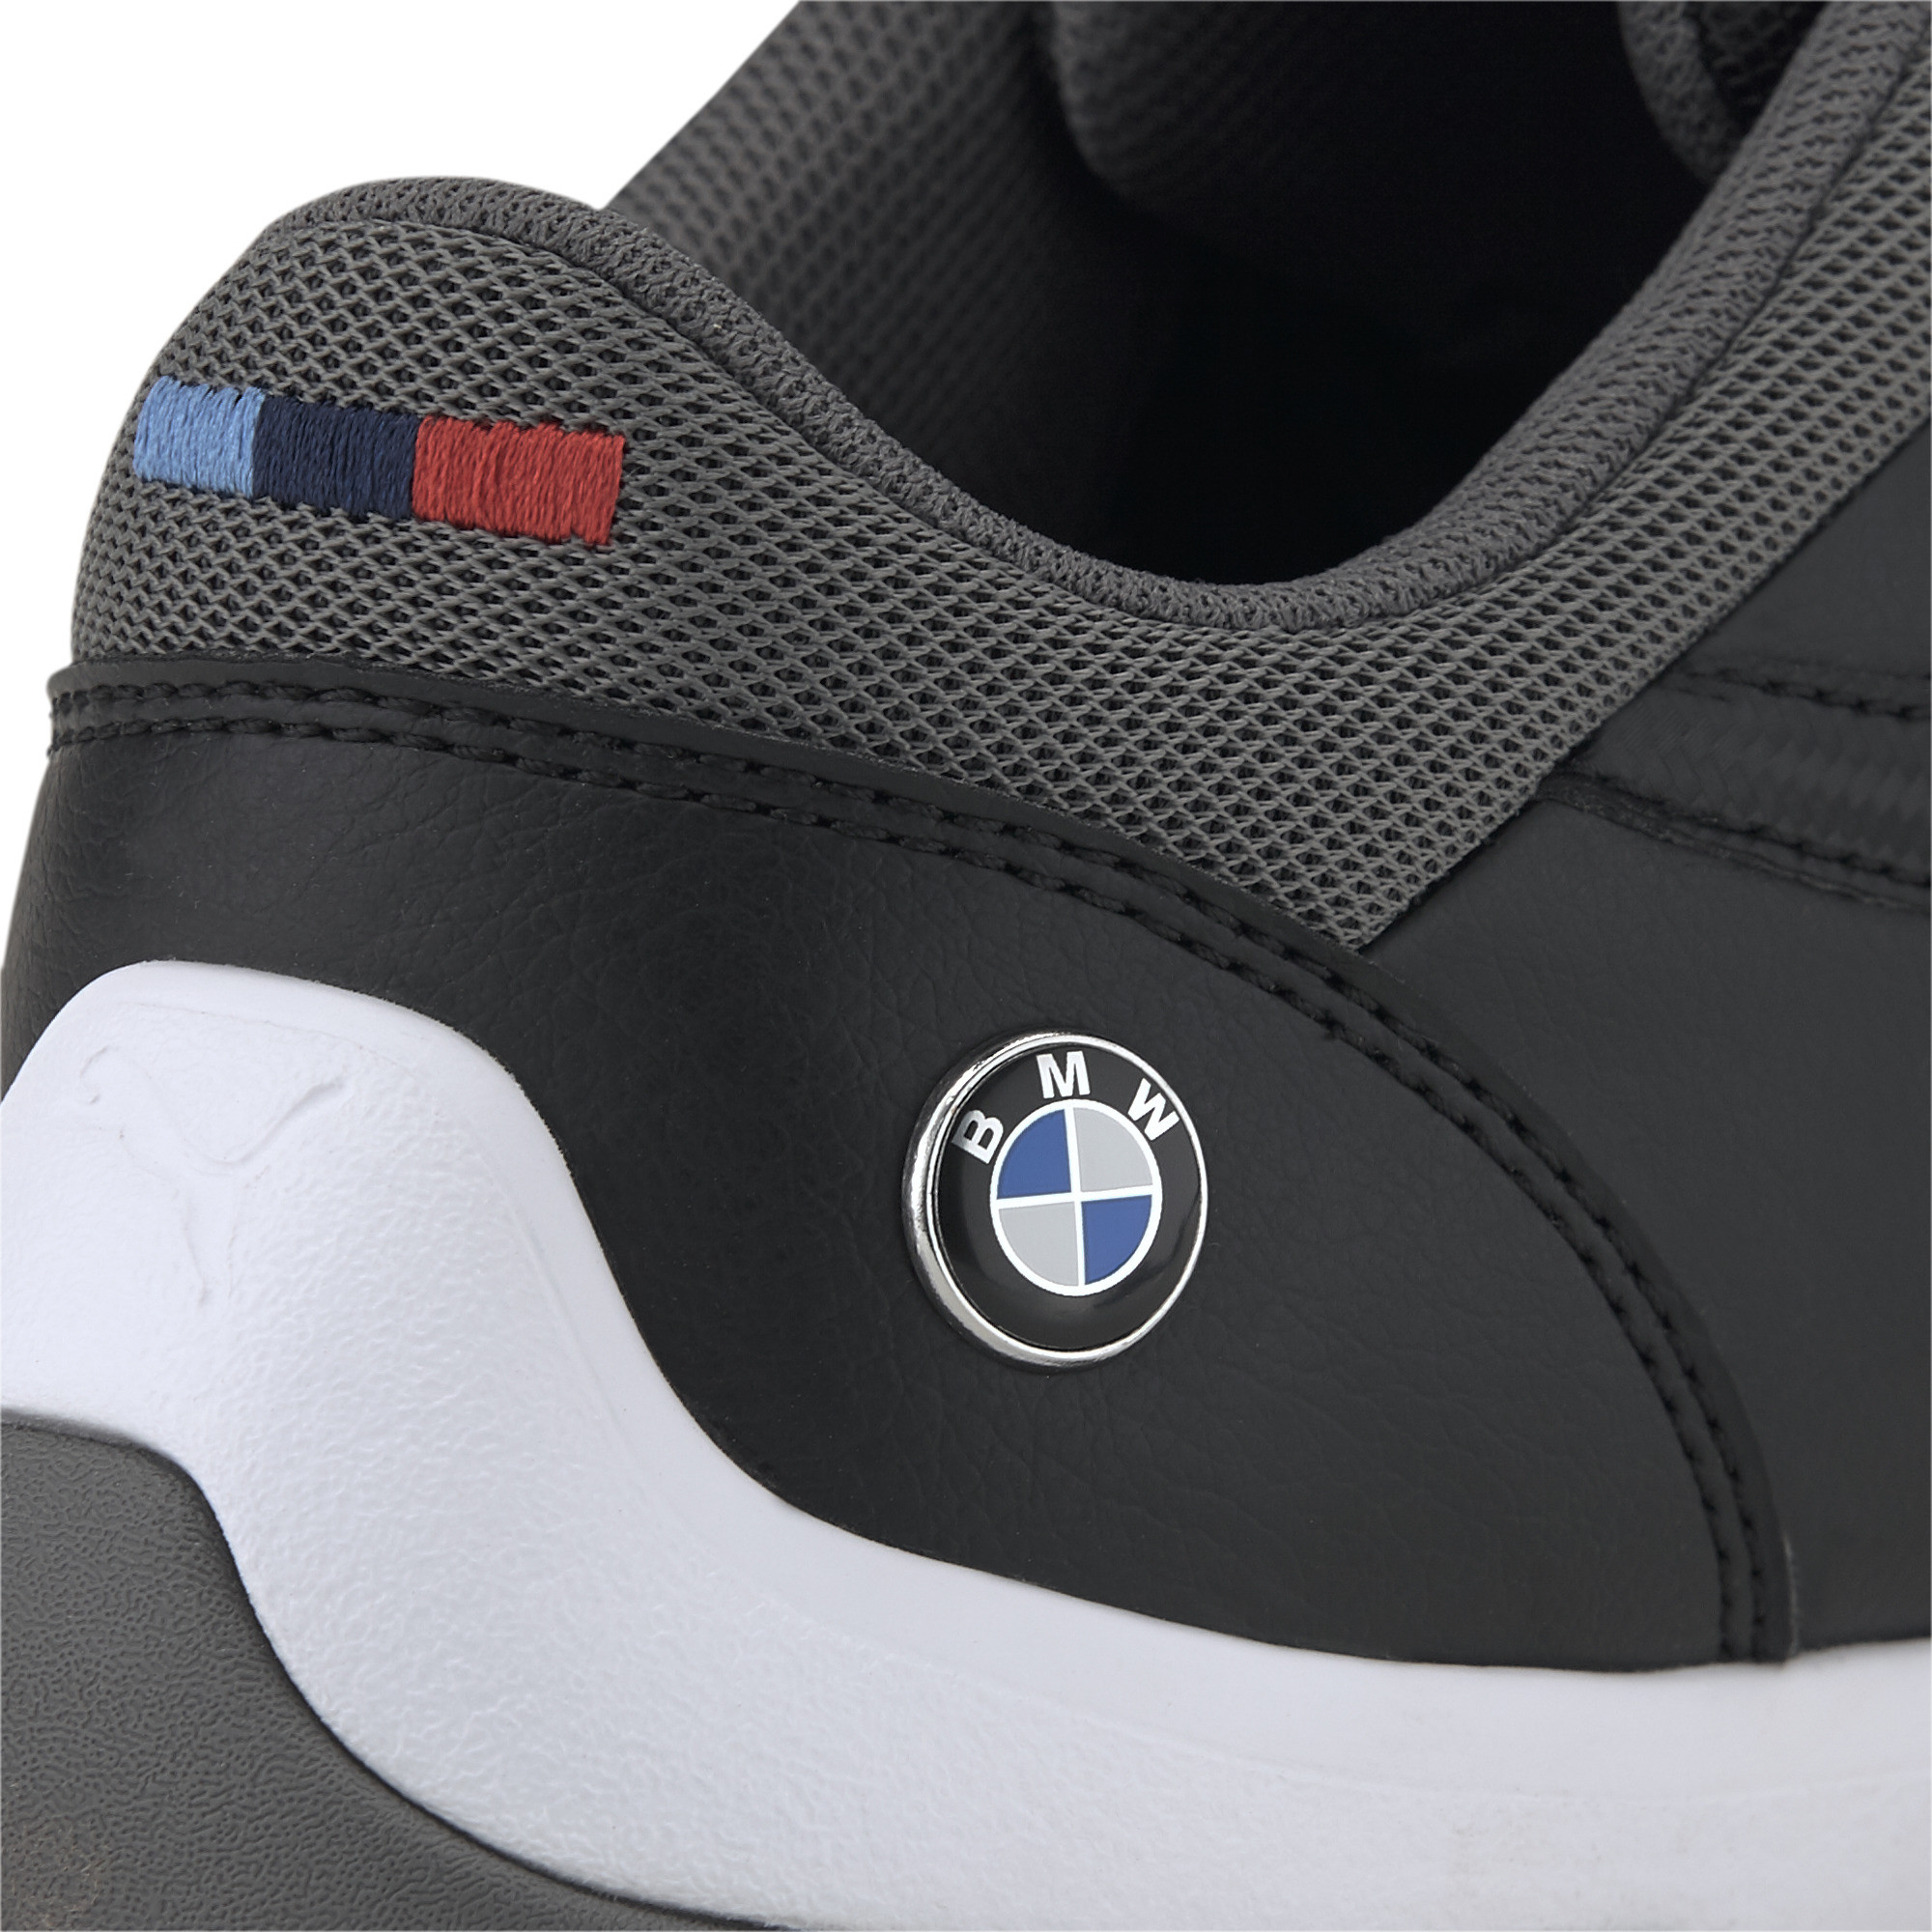 PUMA-Men-039-s-BMW-M-Motorsport-Kart-Cat-III-Motorsport-Shoes thumbnail 8